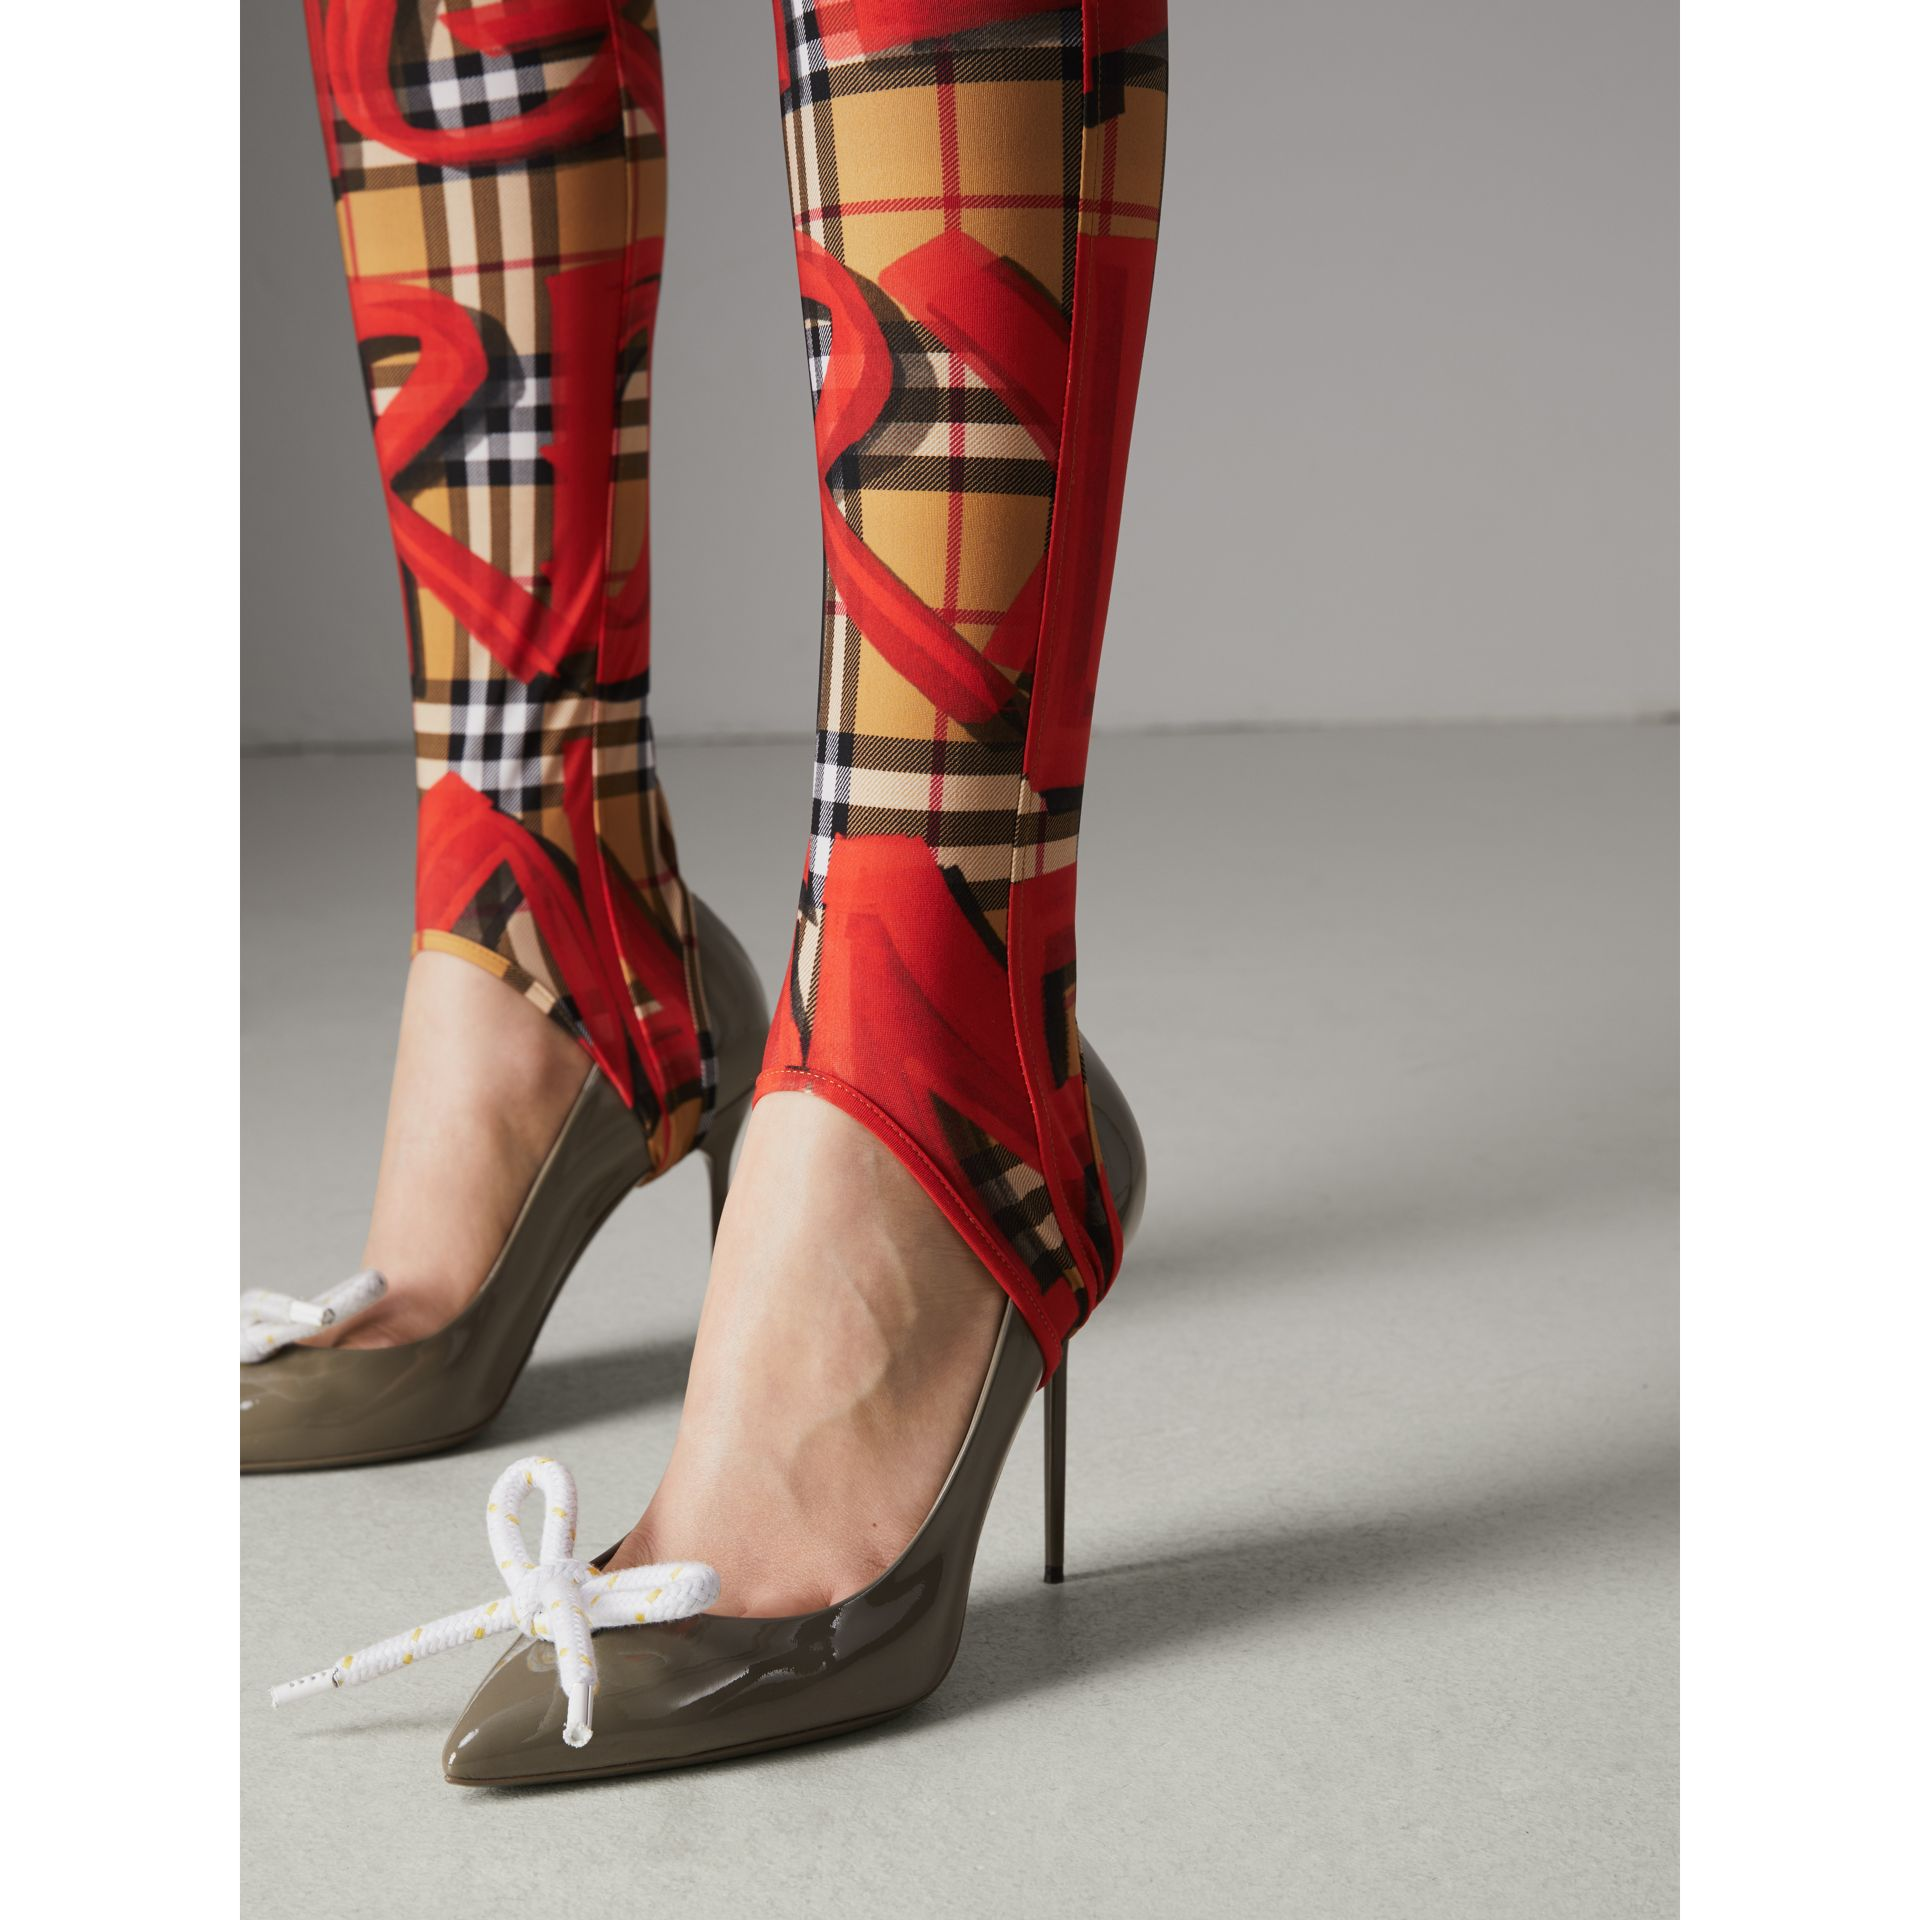 Graffiti Print Leggings in Bright Red - Women | Burberry - gallery image 1